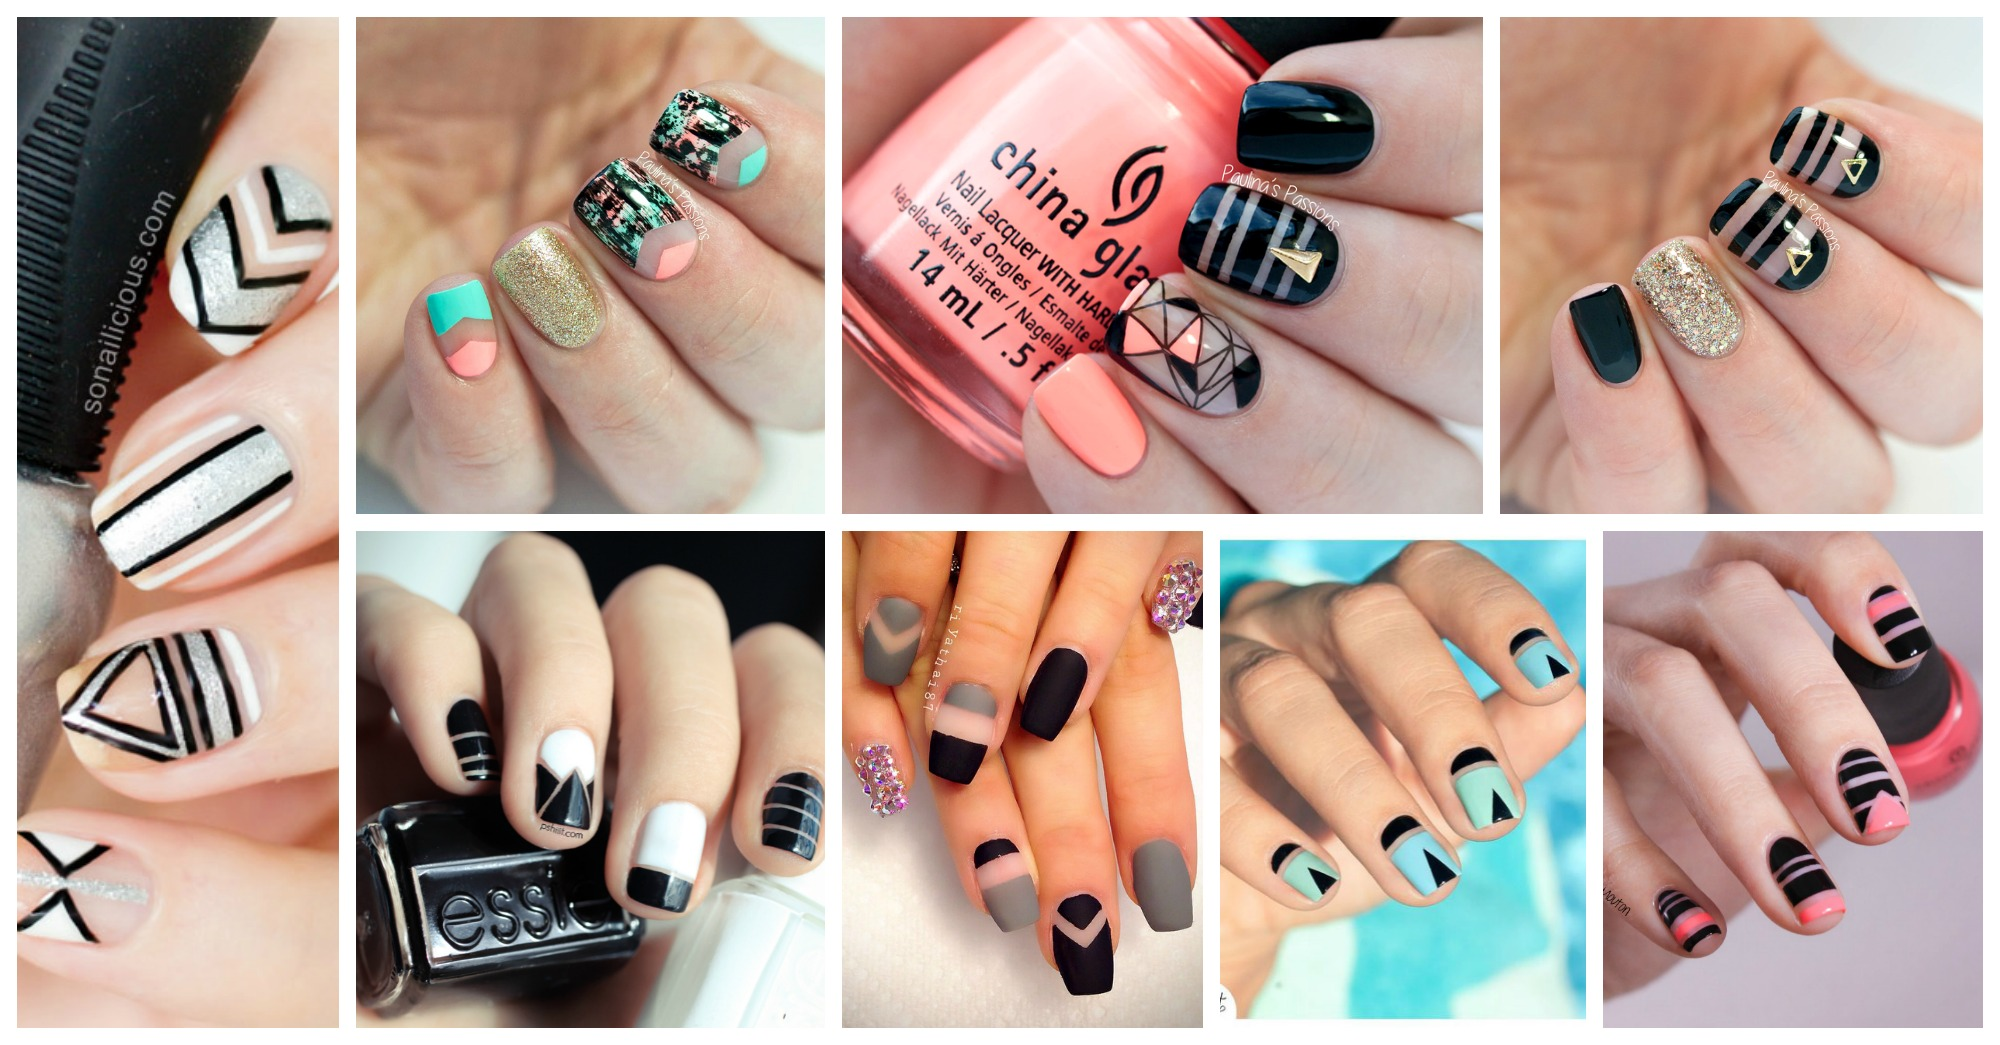 TREND ALERT: Negative Space Nail Designs